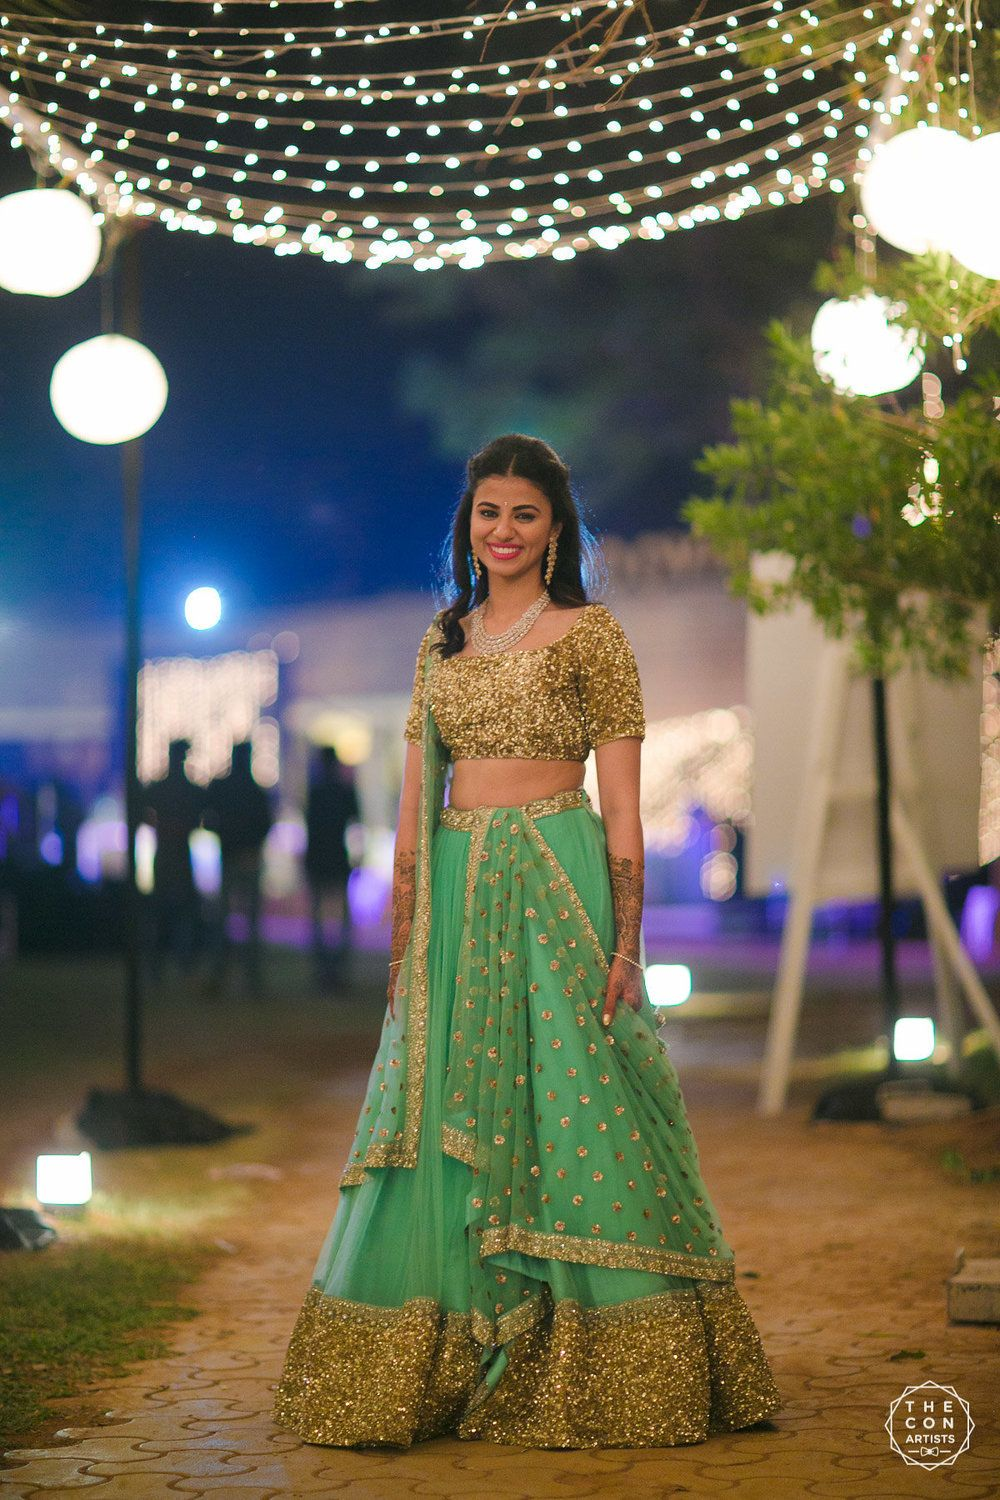 Photo of Gold and green sparkly lehenga